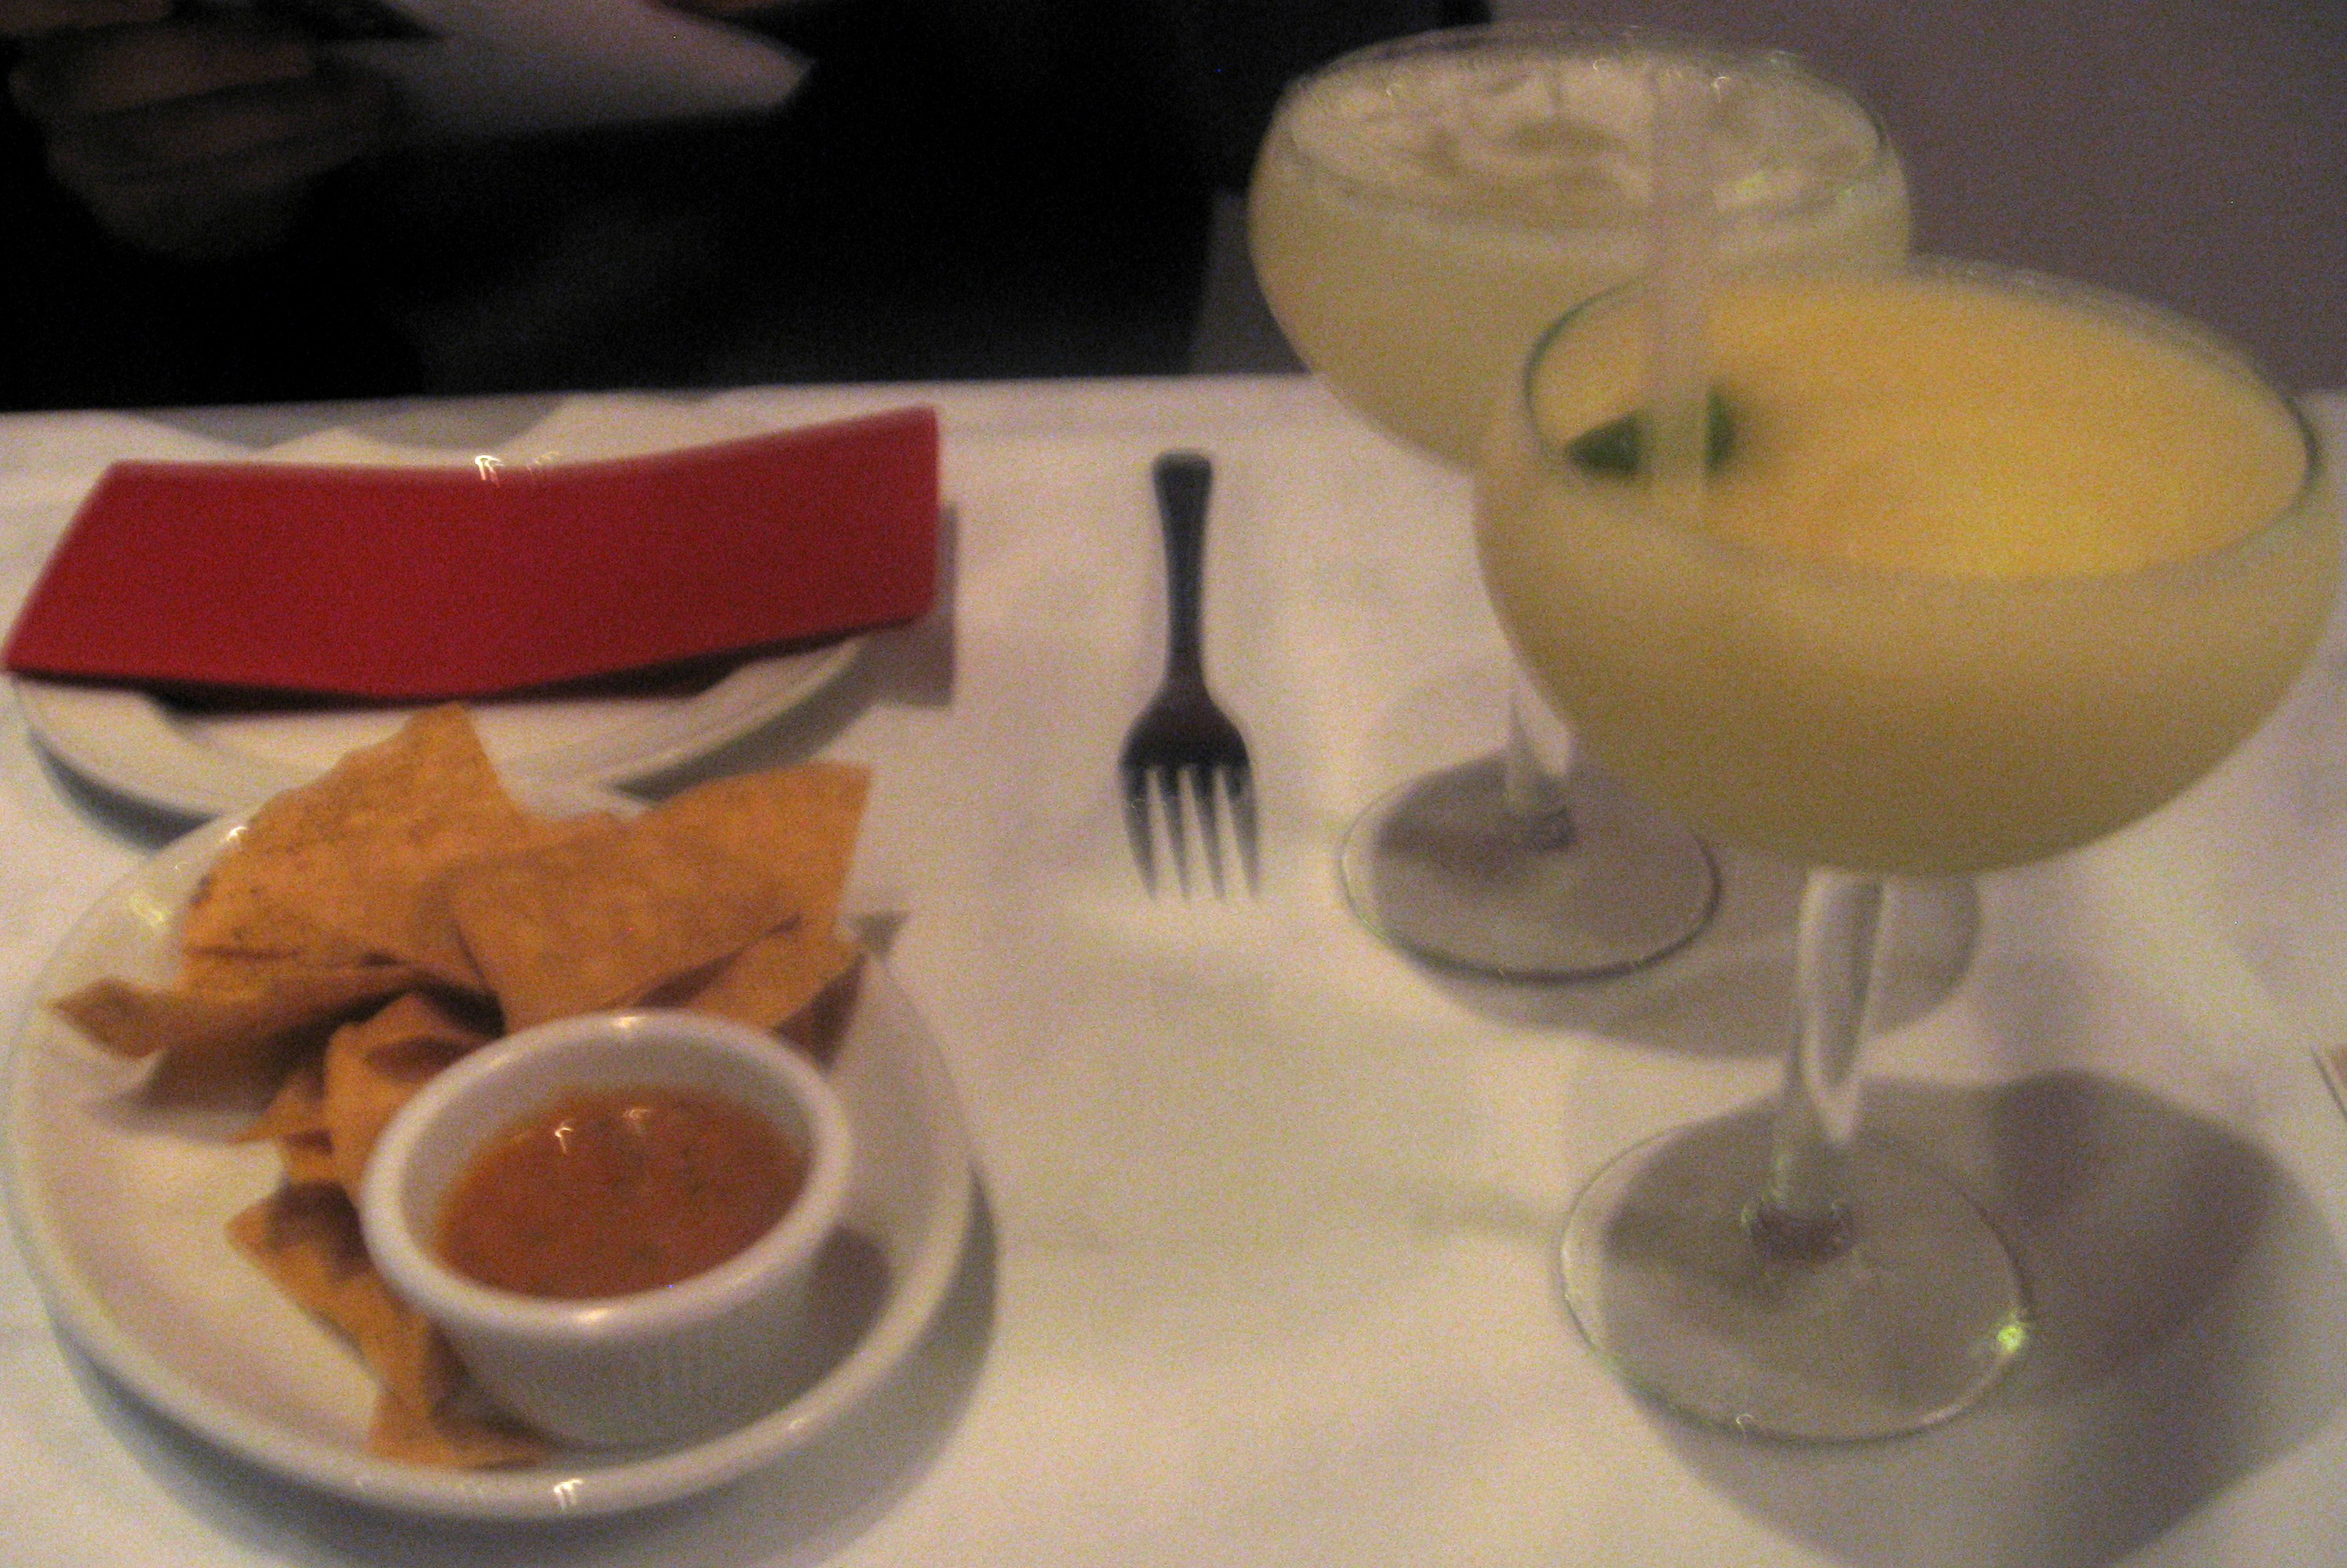 Margaritas and tortilla chips